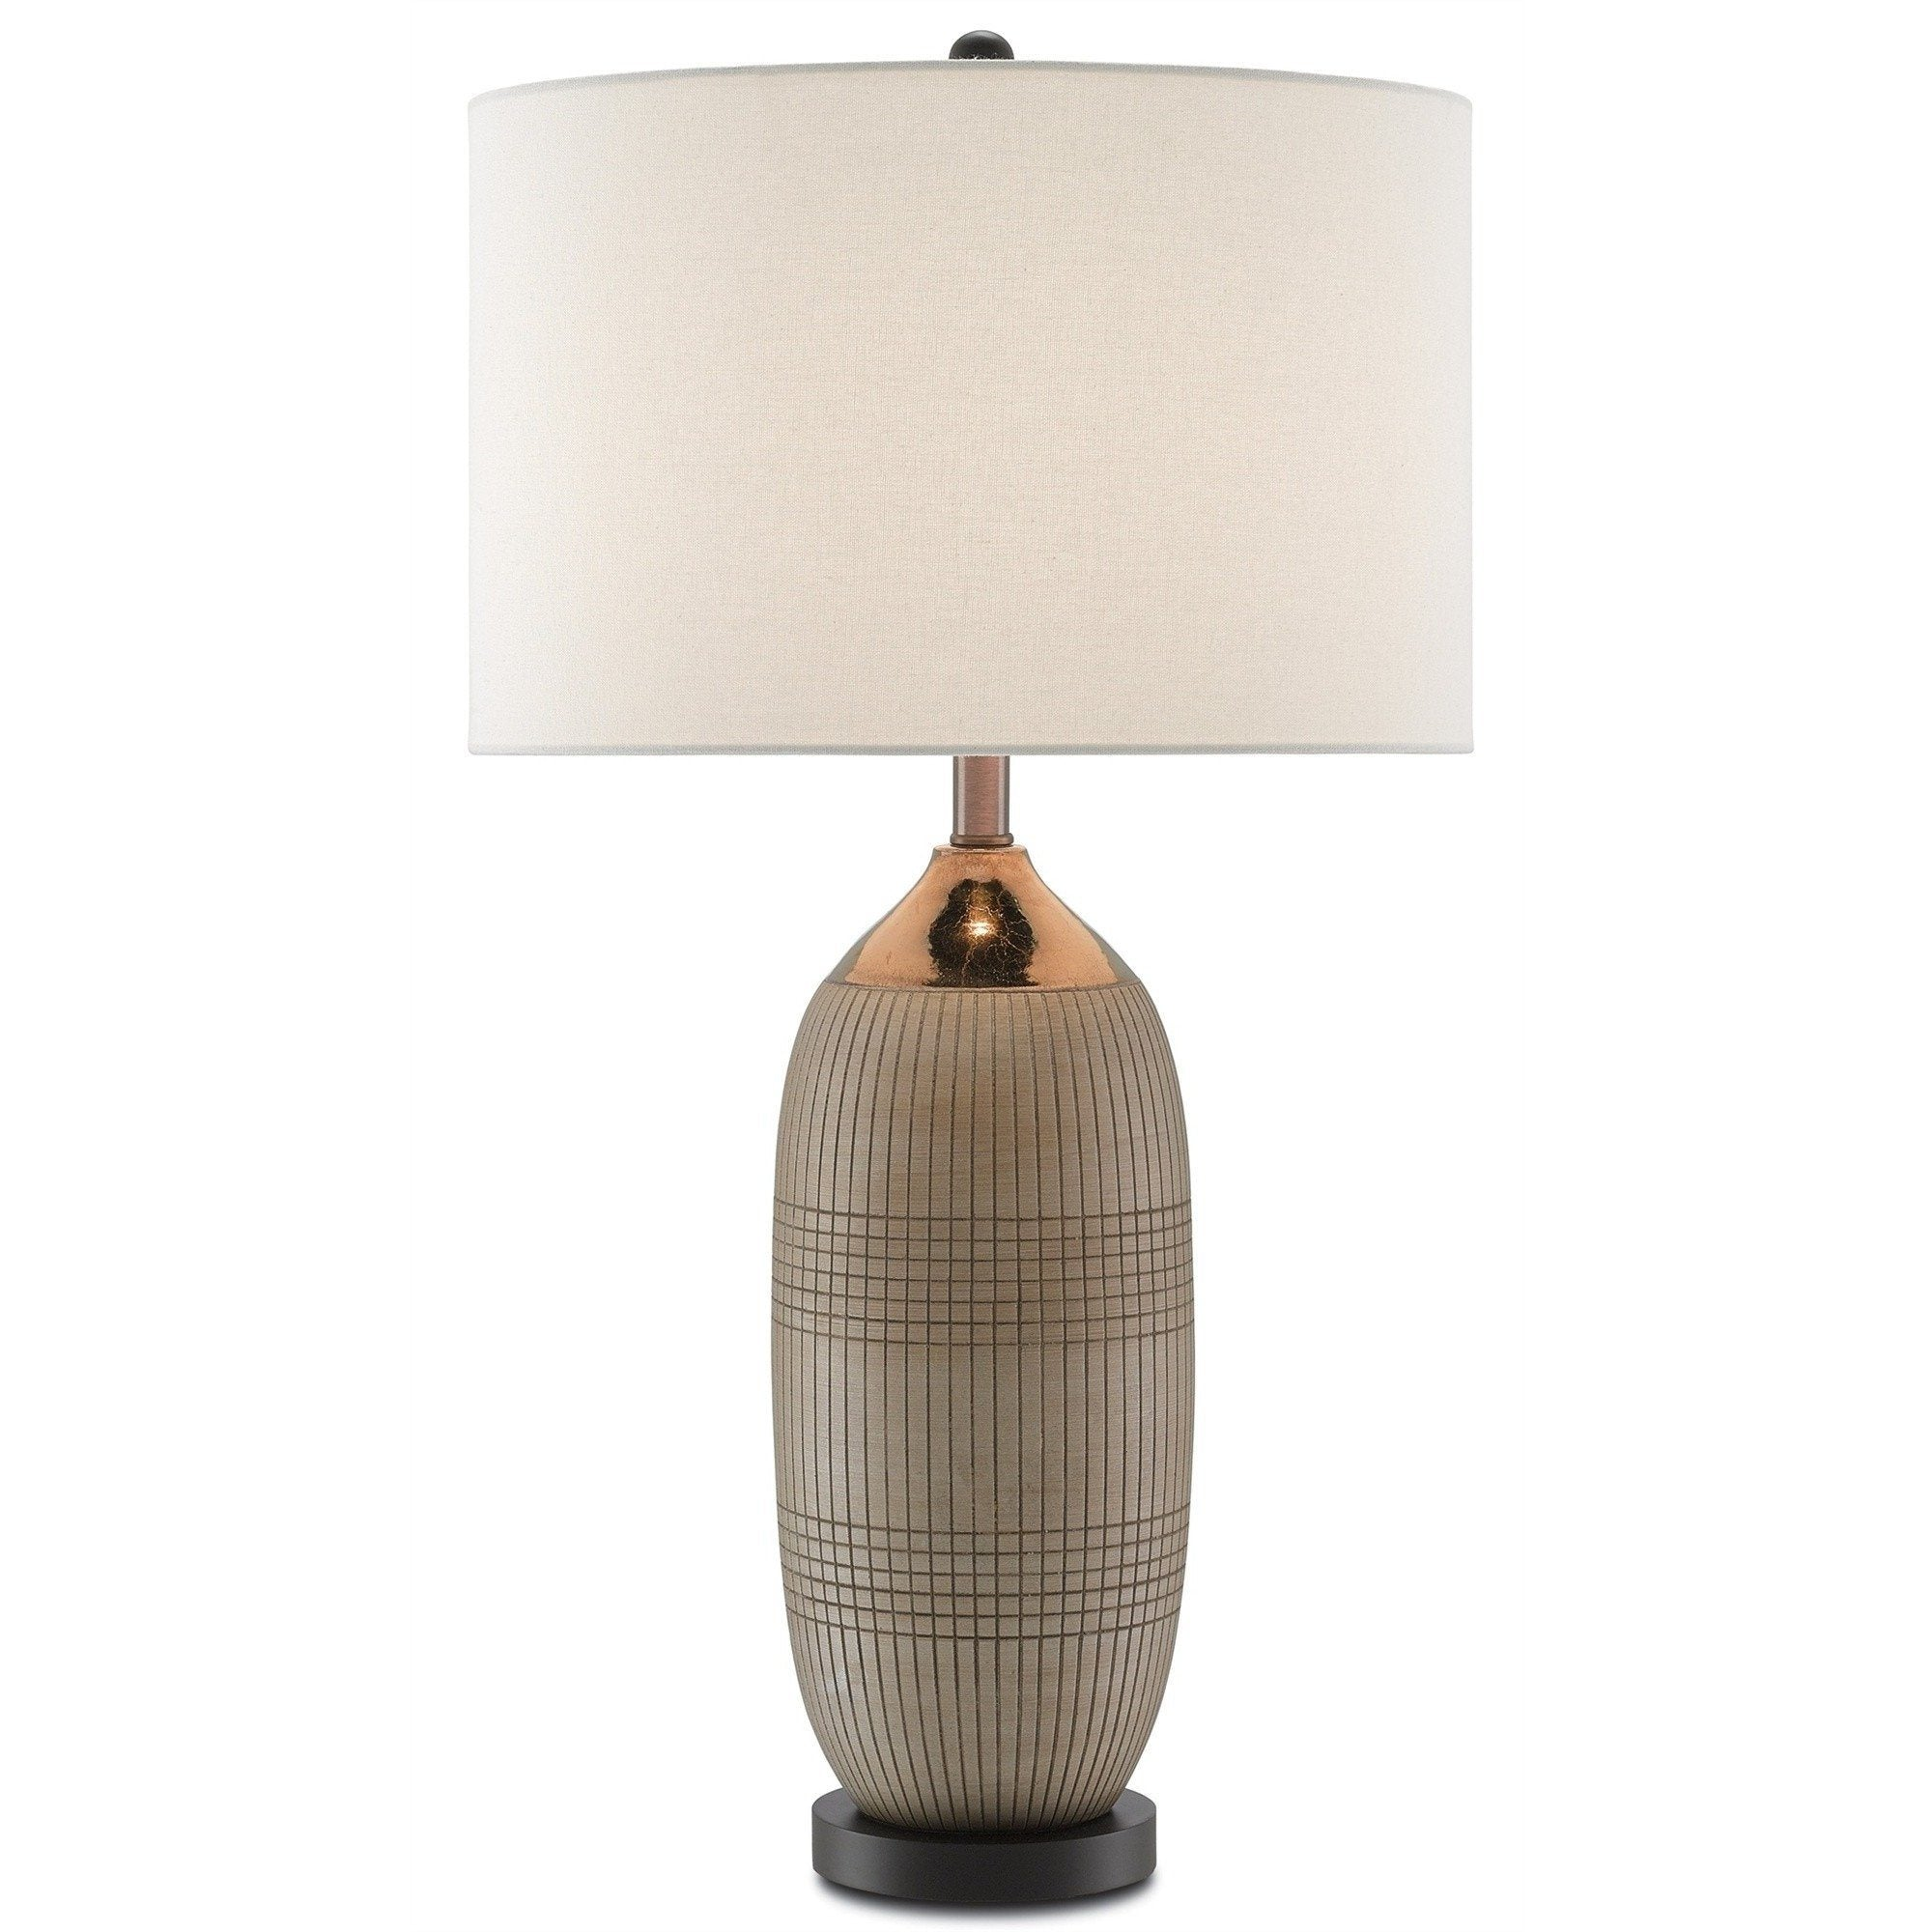 Currey and Company Alexander Table Lamp 6000-0096 - LOVECUP - 1